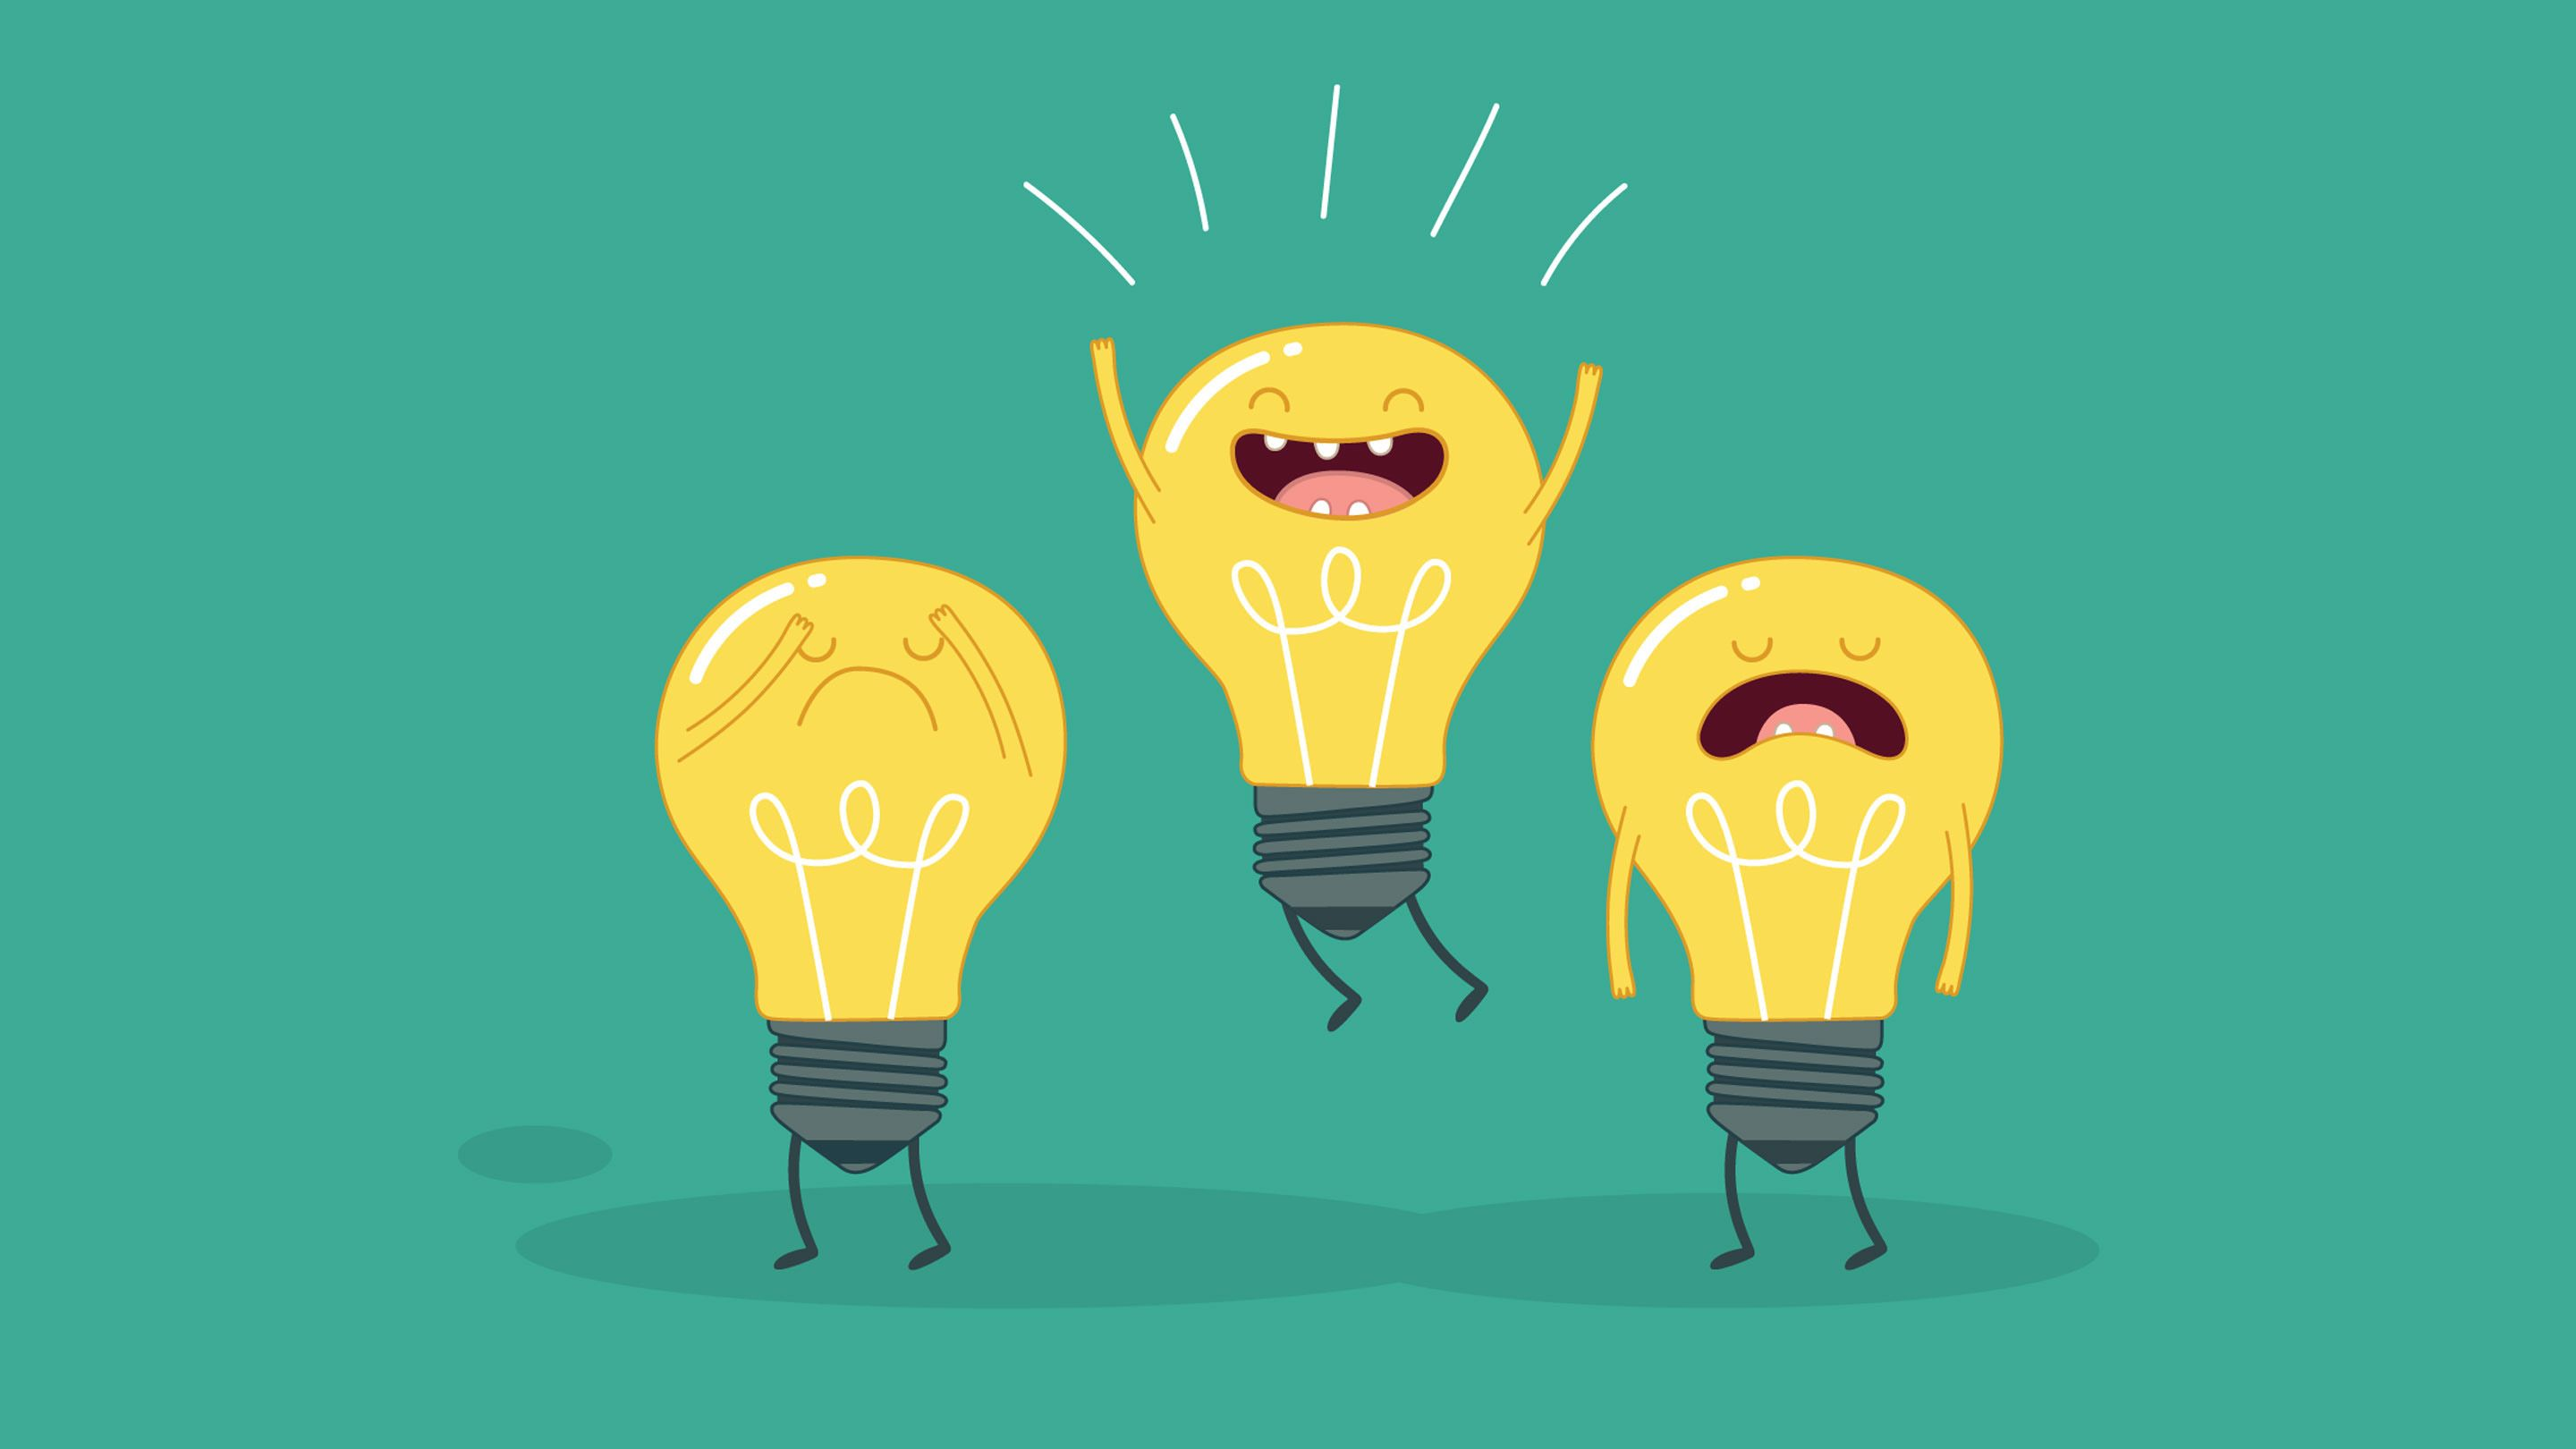 Three cartoon lightbulbs standing together–one frowning, one jumping up and down and smiling, the other crying.